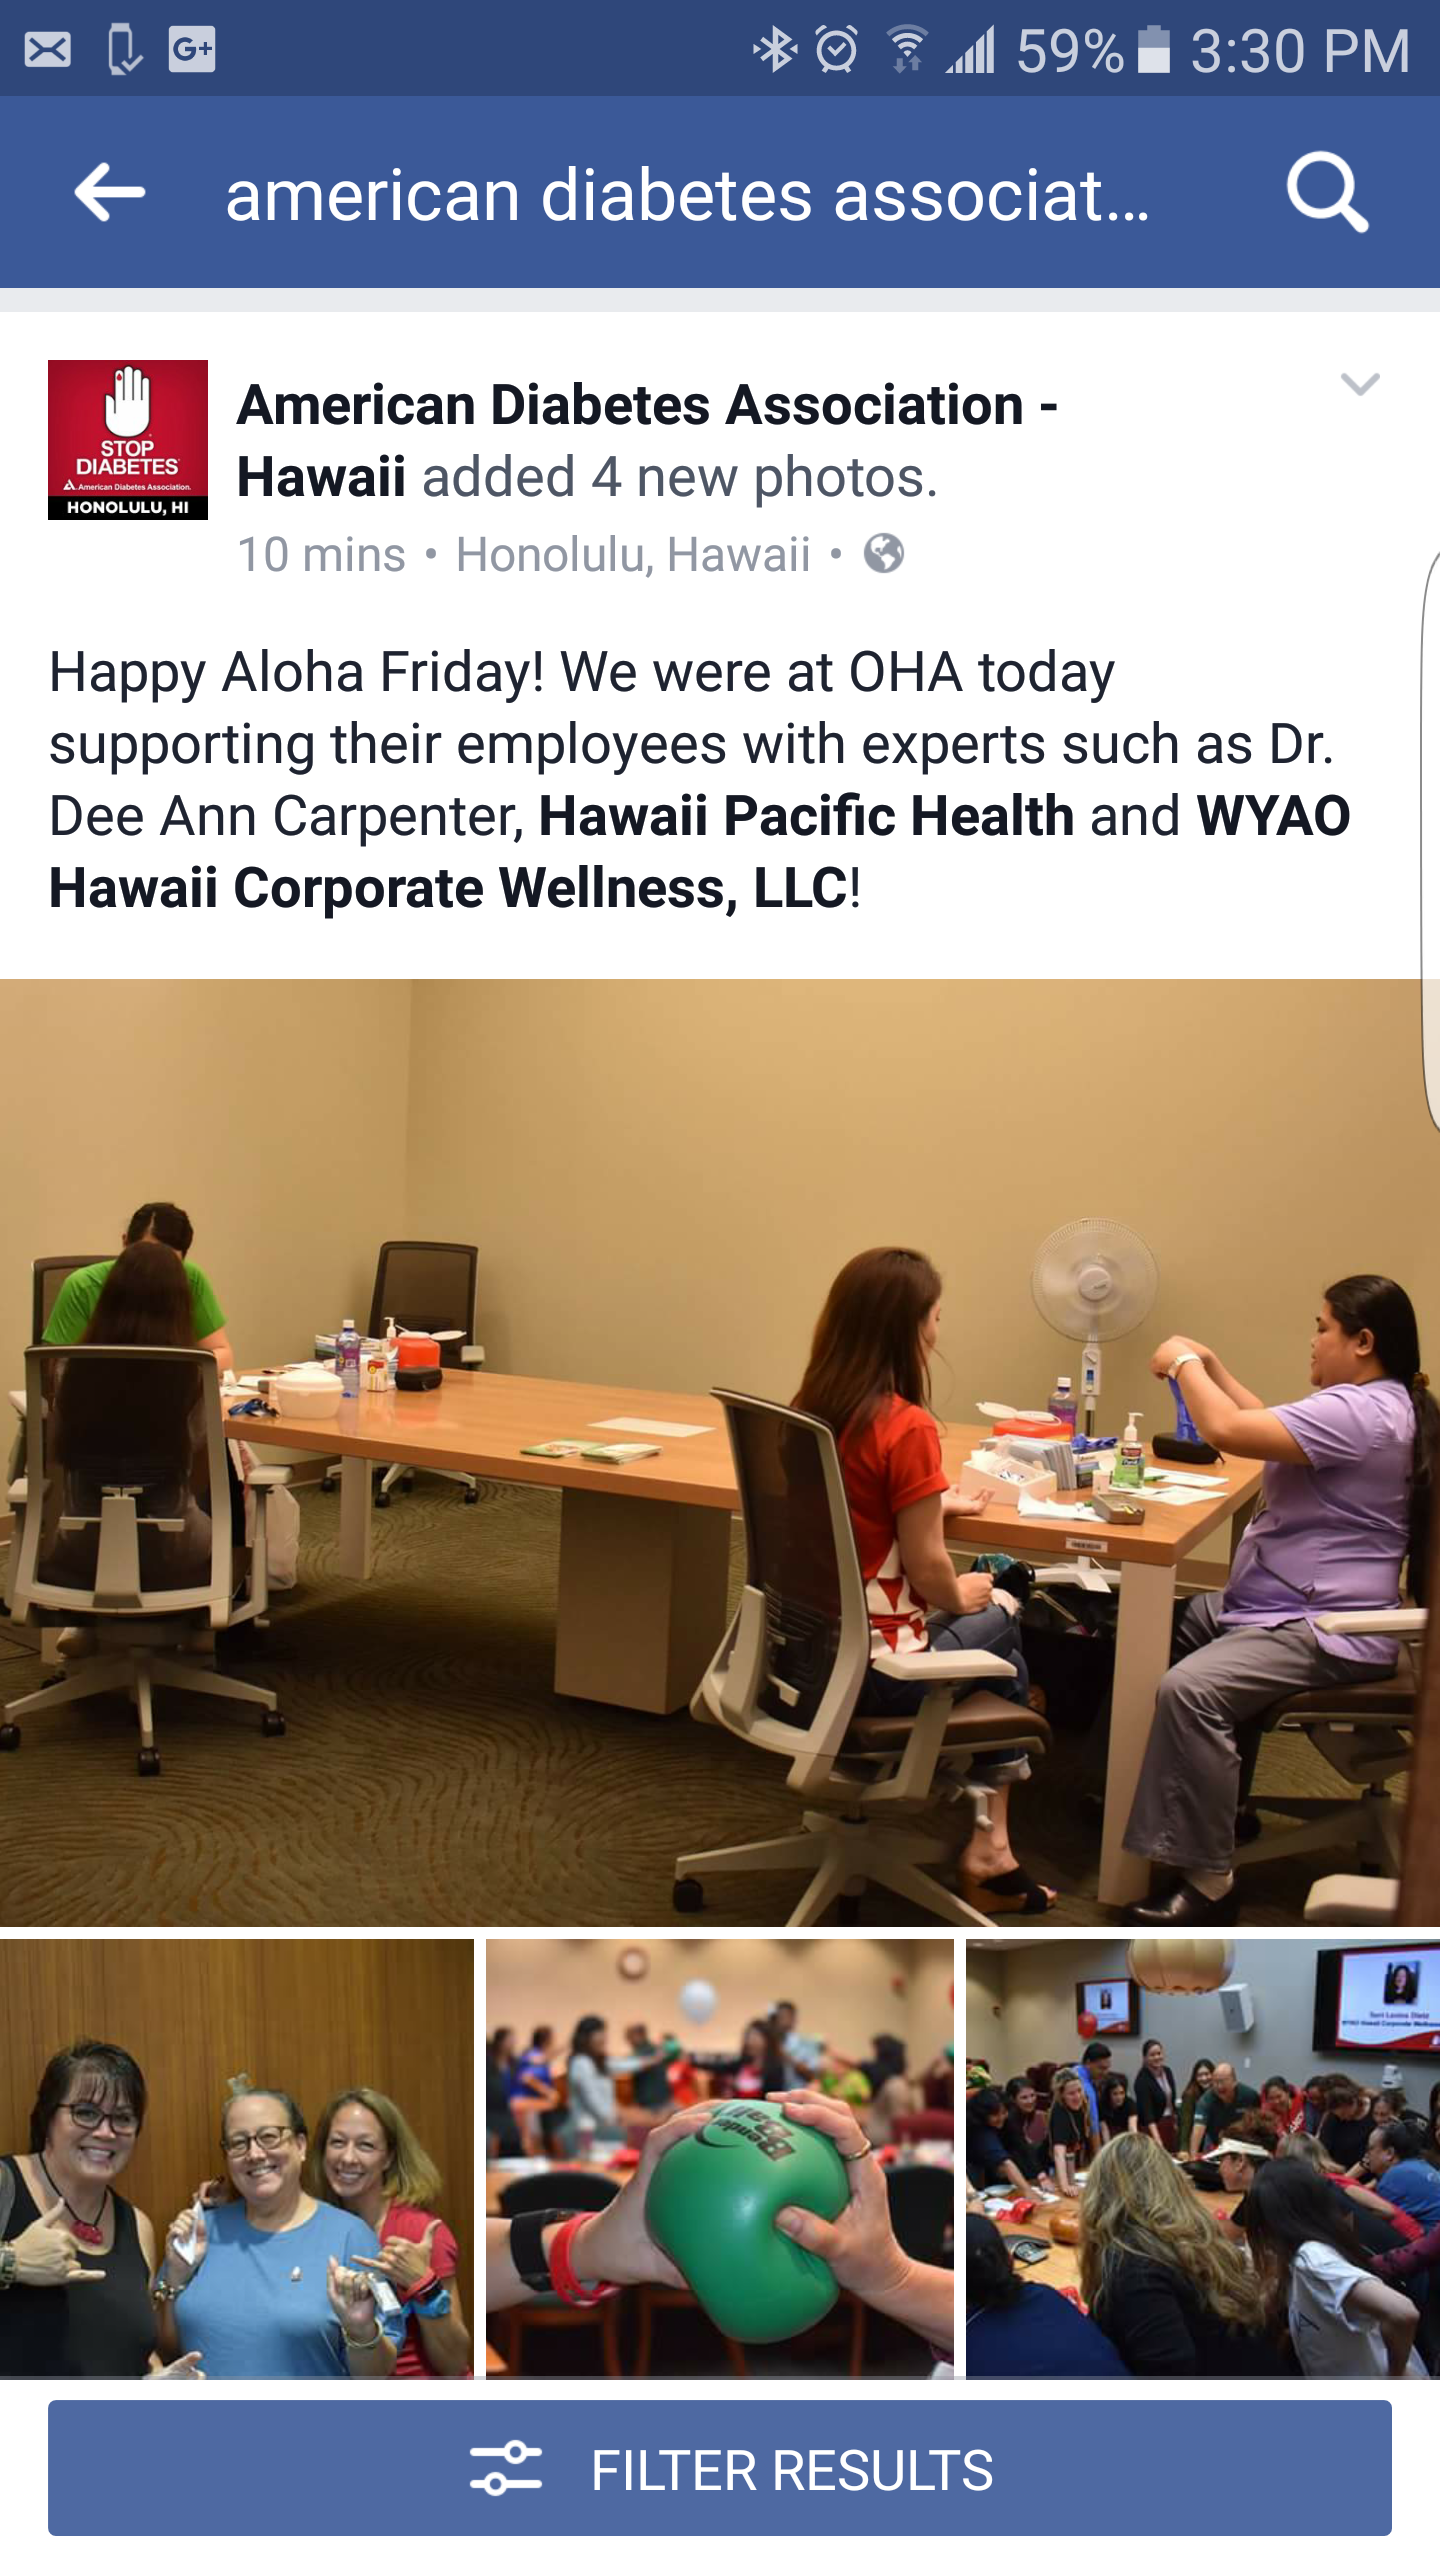 Collaboration with American Diabetes Association Hawaii